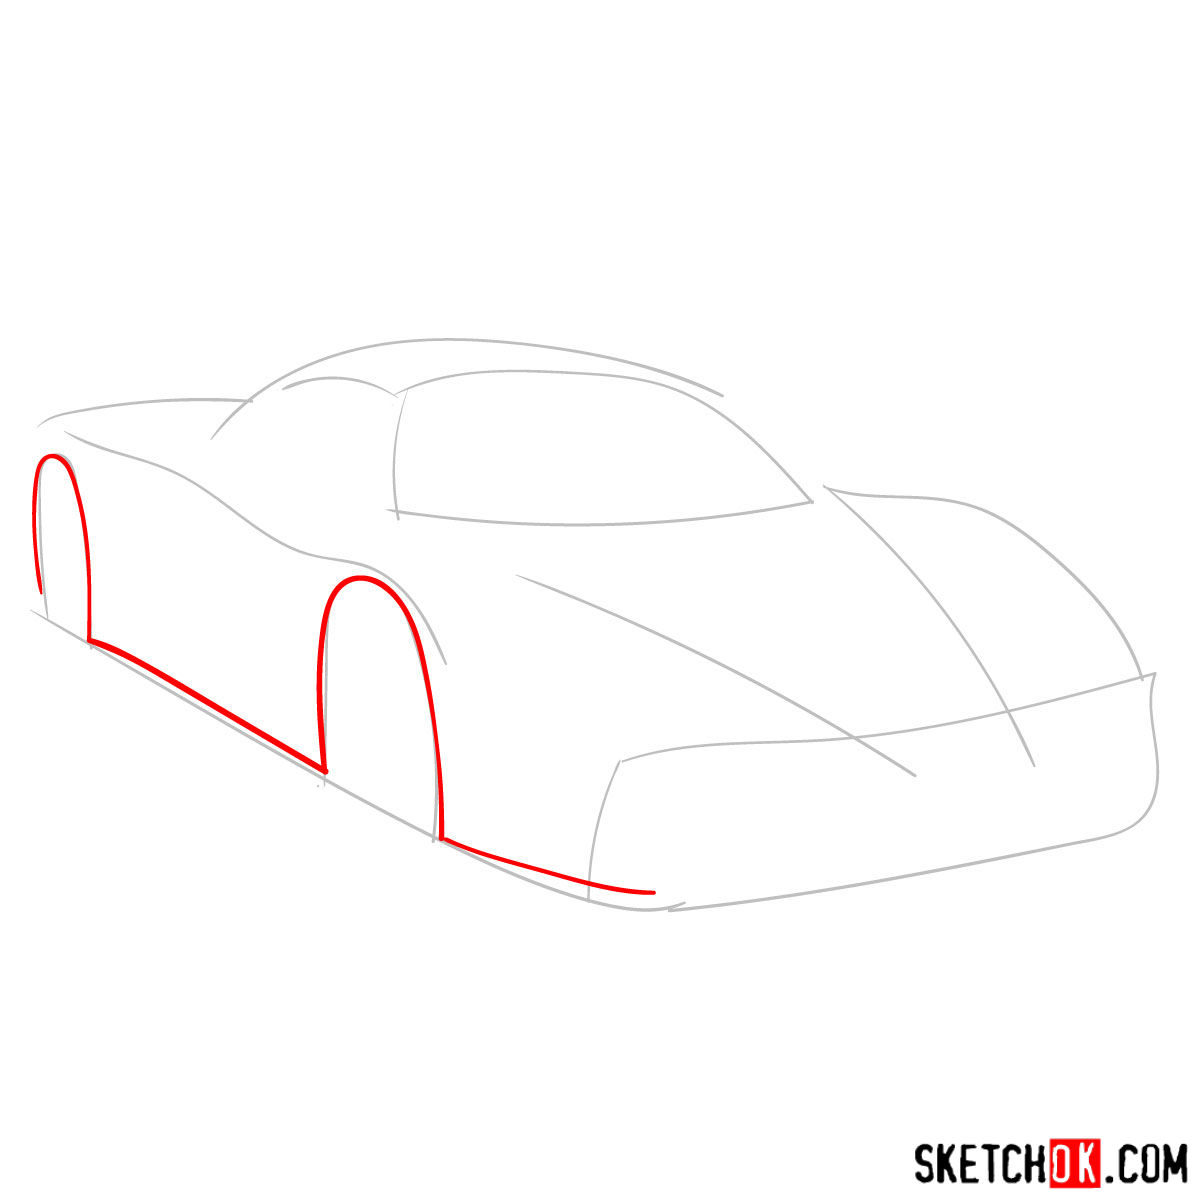 How to draw Ferrari Enzo legendary supercar - step 02